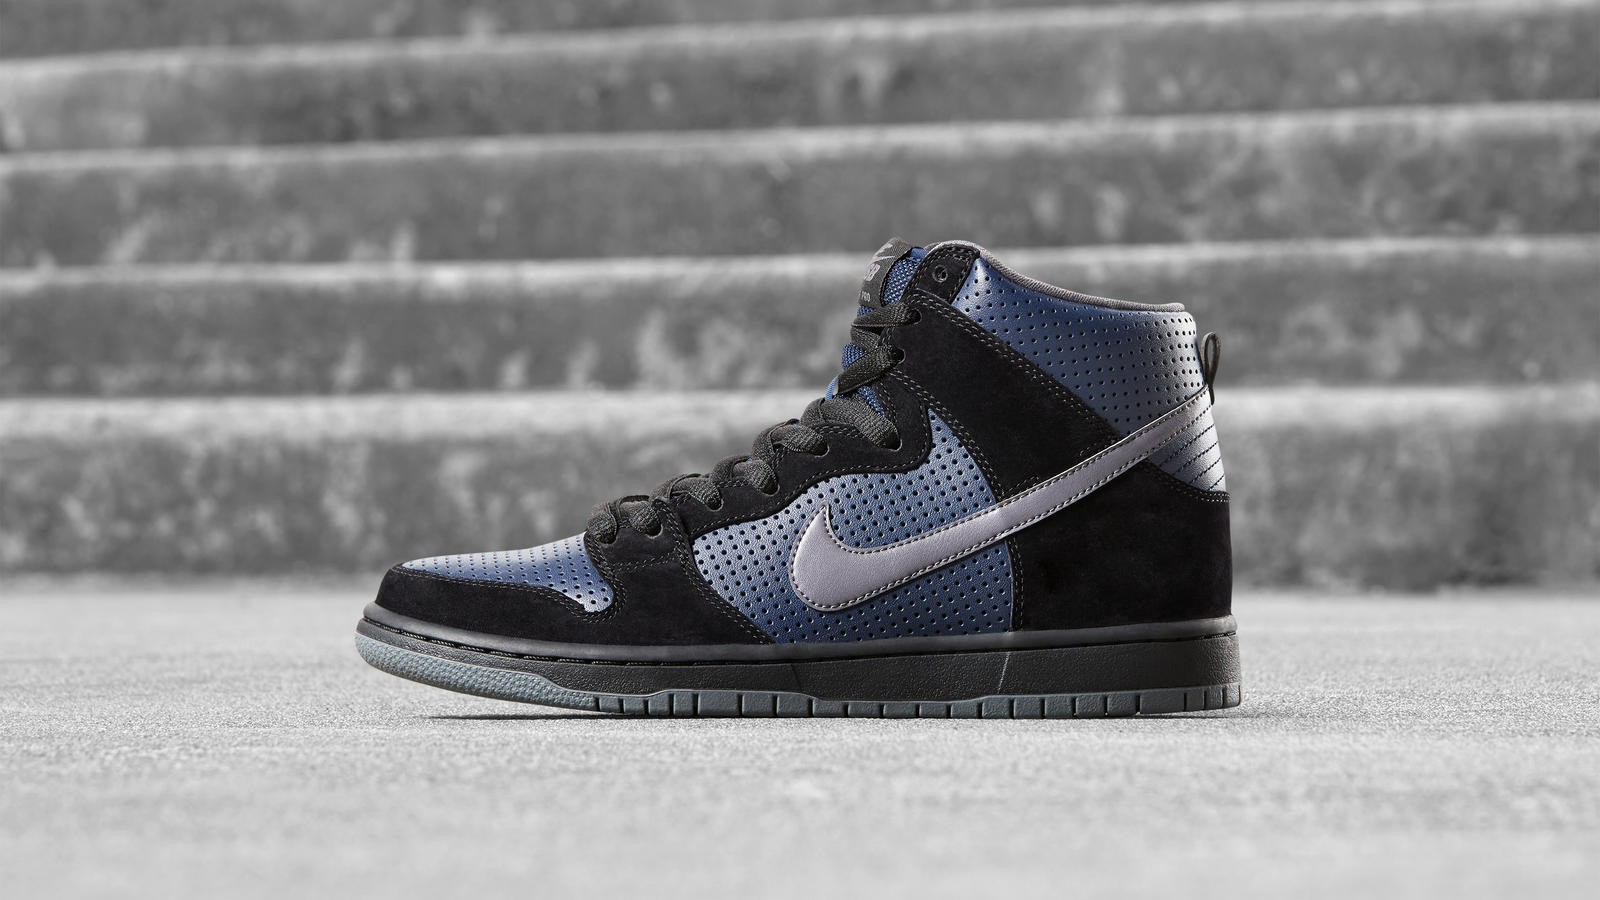 170320 footwear sb blk navy dunk 0066 hd 1600